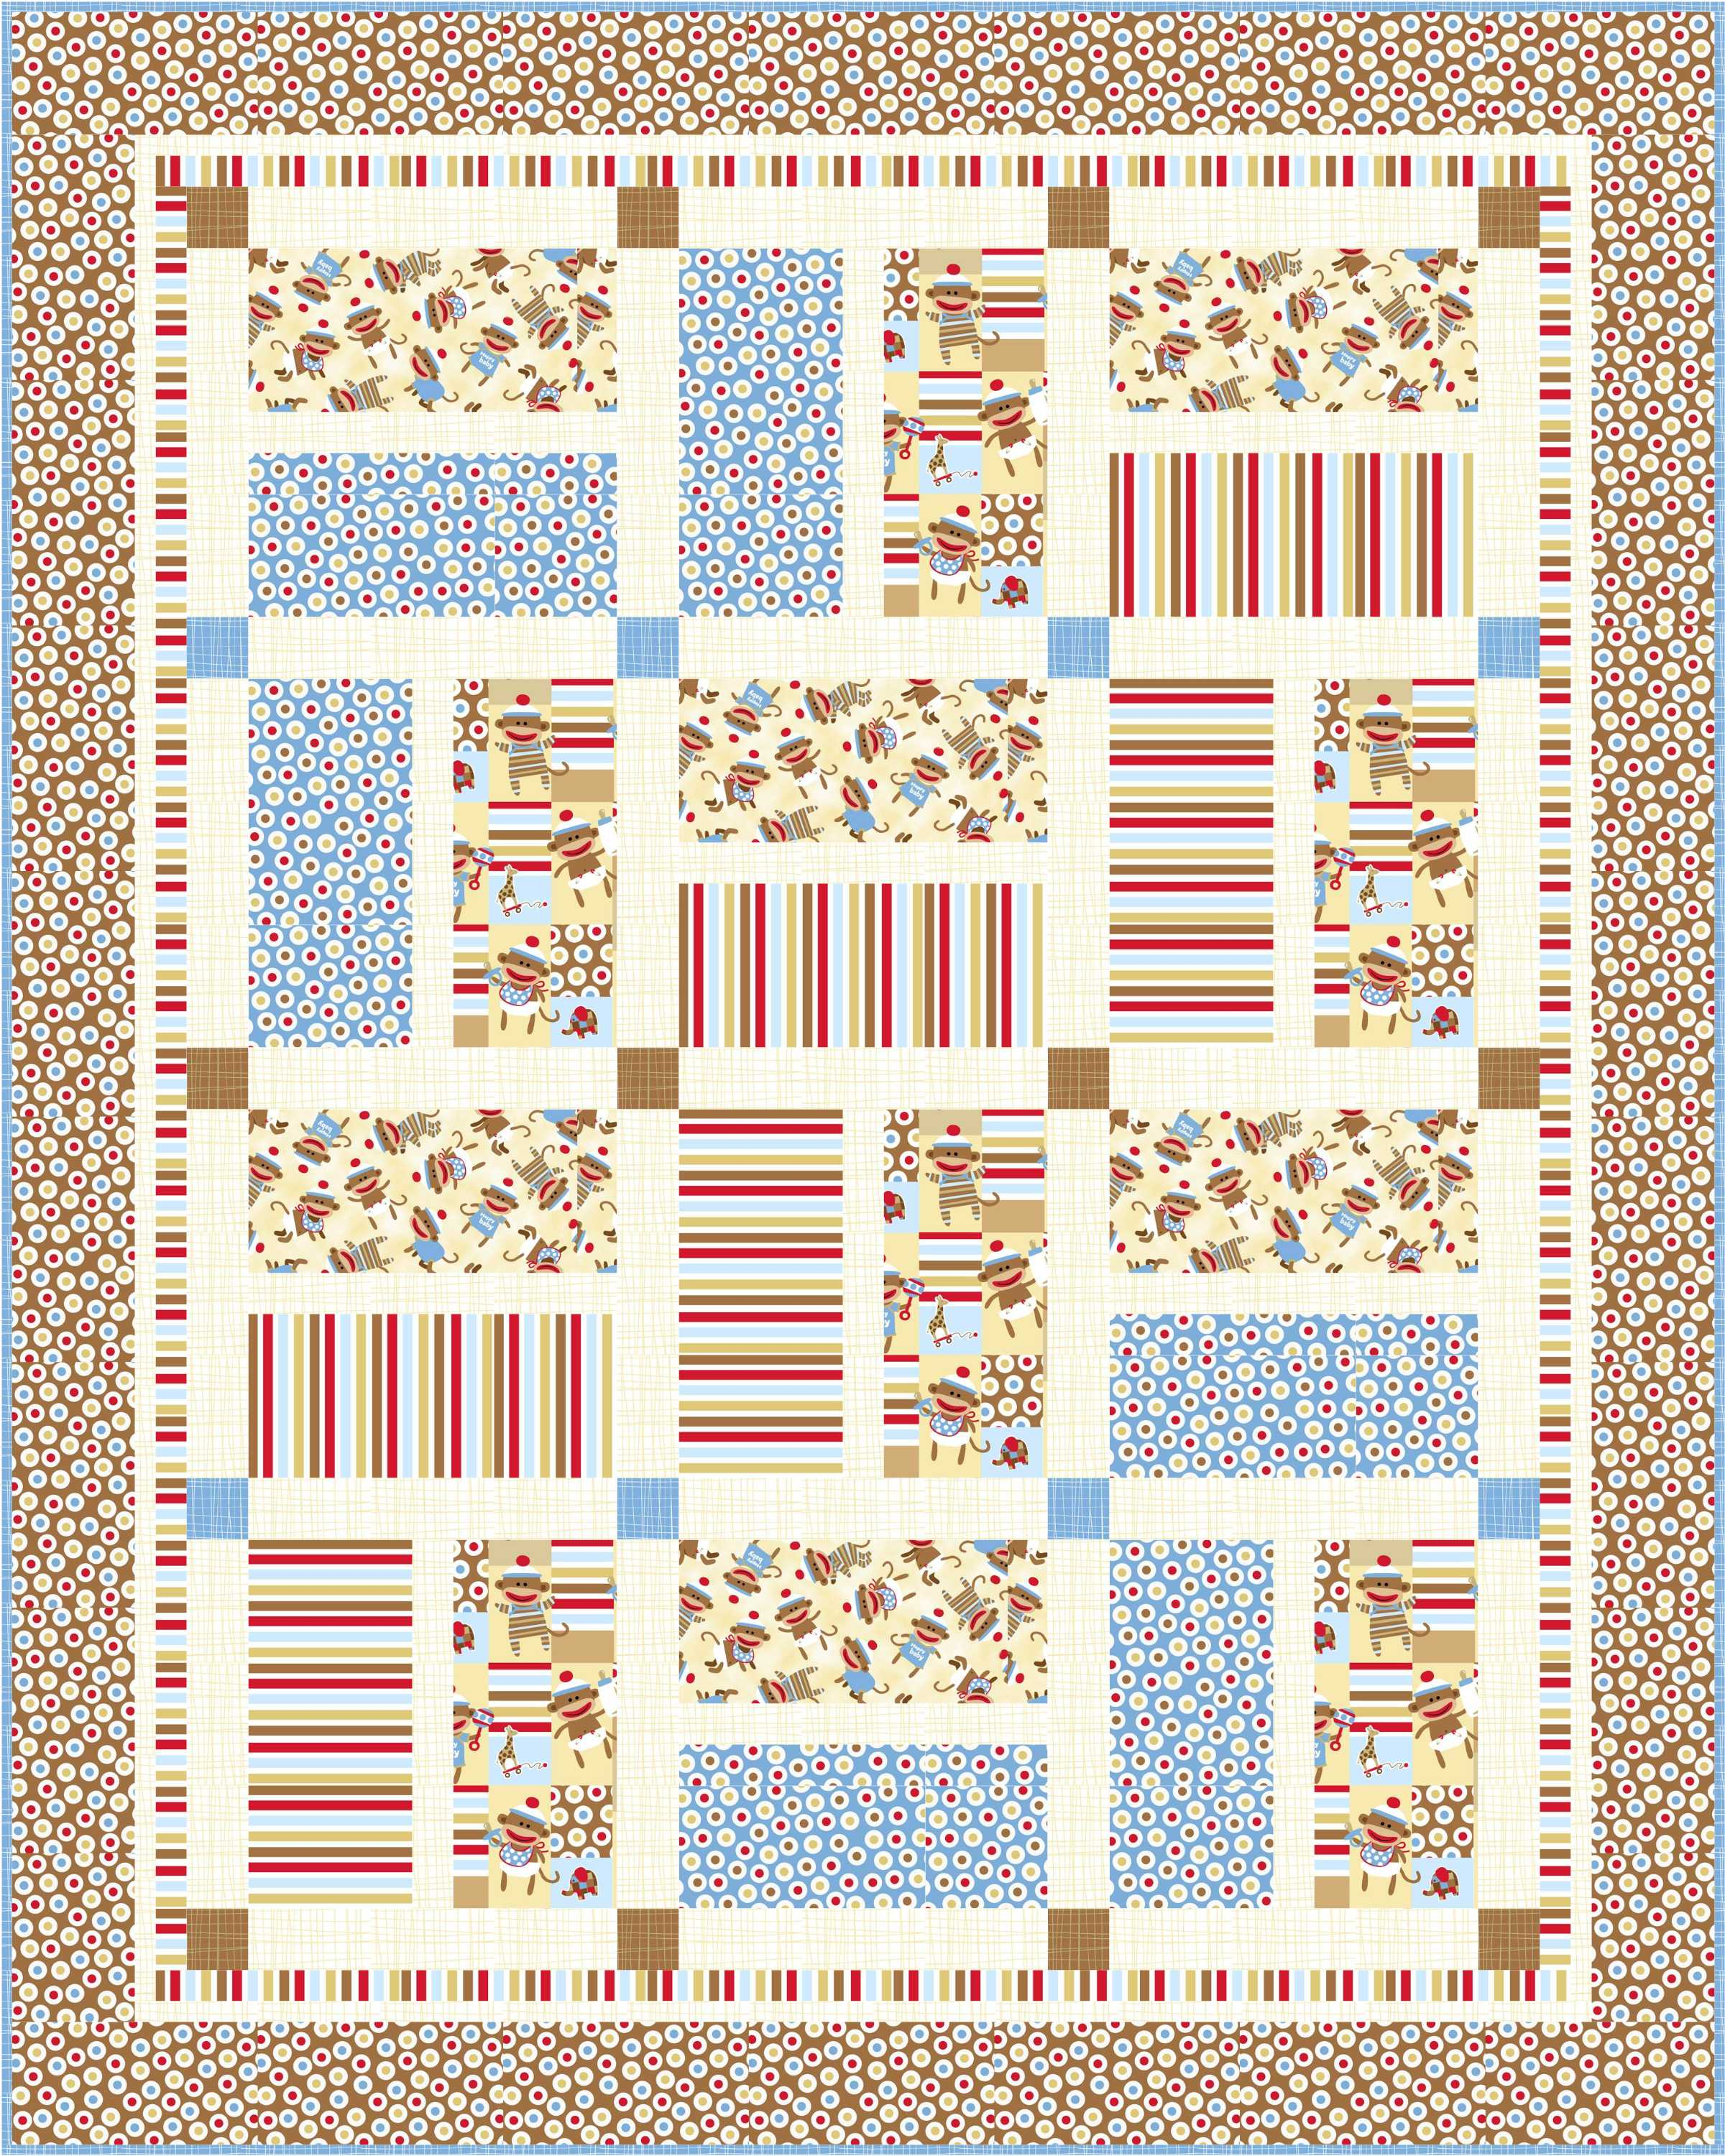 free pattern zoe  zack baby crib quilts (more sock monkeys  - crib quilt bluehigh res with binding